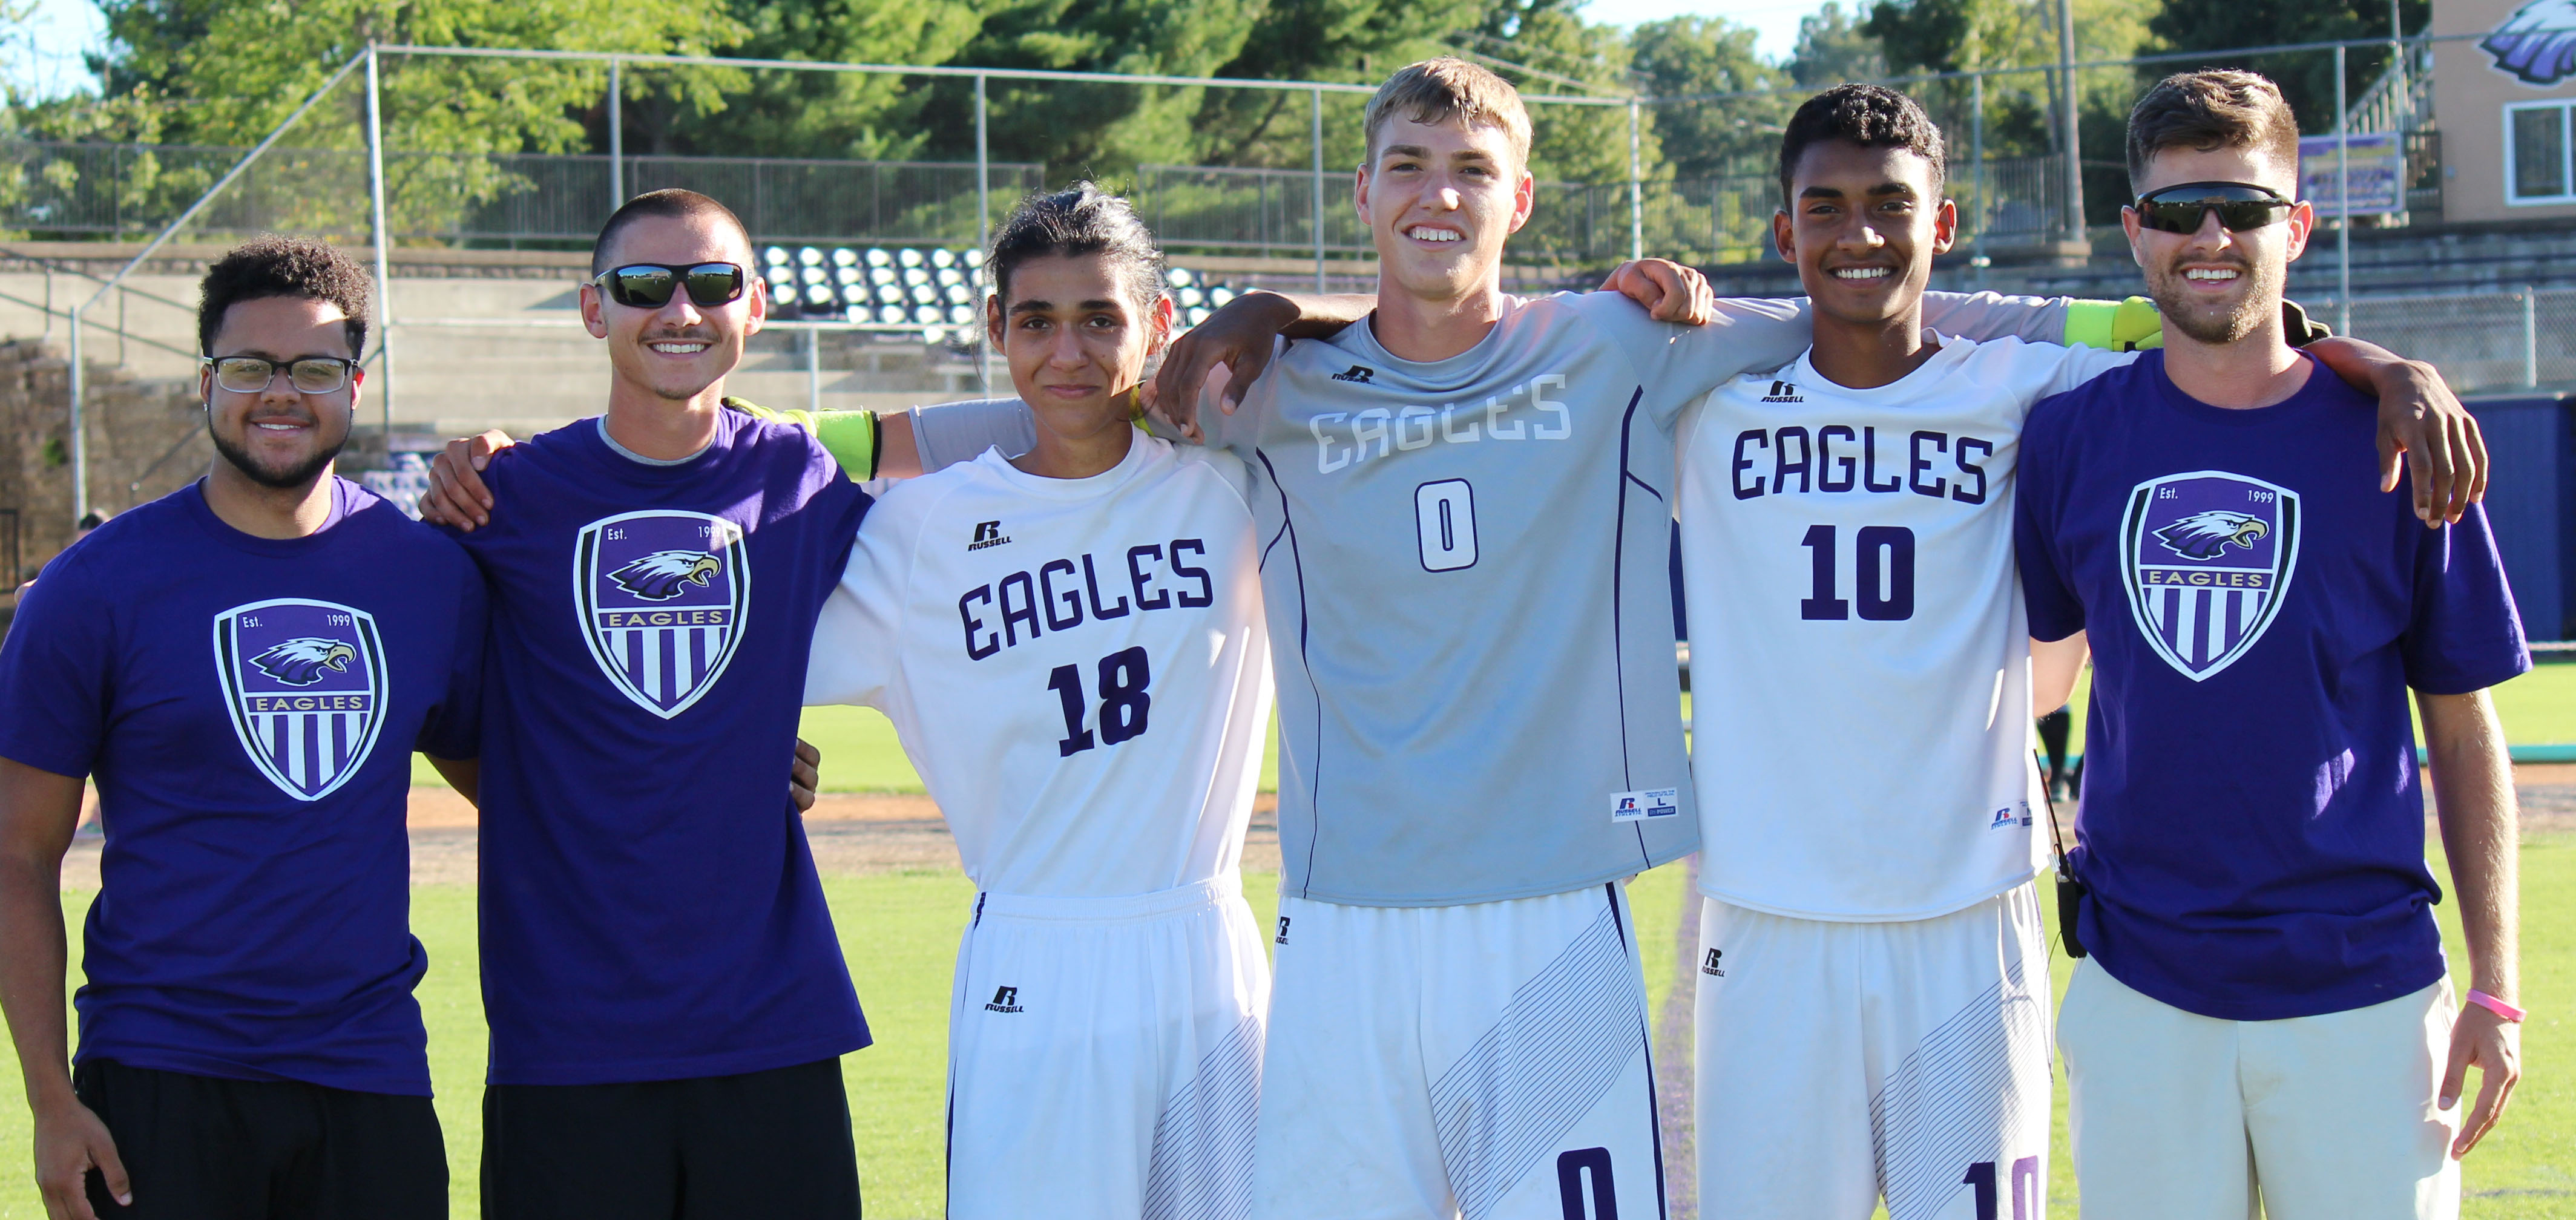 CHS senior soccer players were honored in a special ceremony on Tuesday, Sept. 27. They are, from left, statistician manager Malique Spaulding, head coach Bradley Harris, Michael De Oliveira, Zack Bottoms, Daniel Silva and assistant coach Matthew Schmuck.